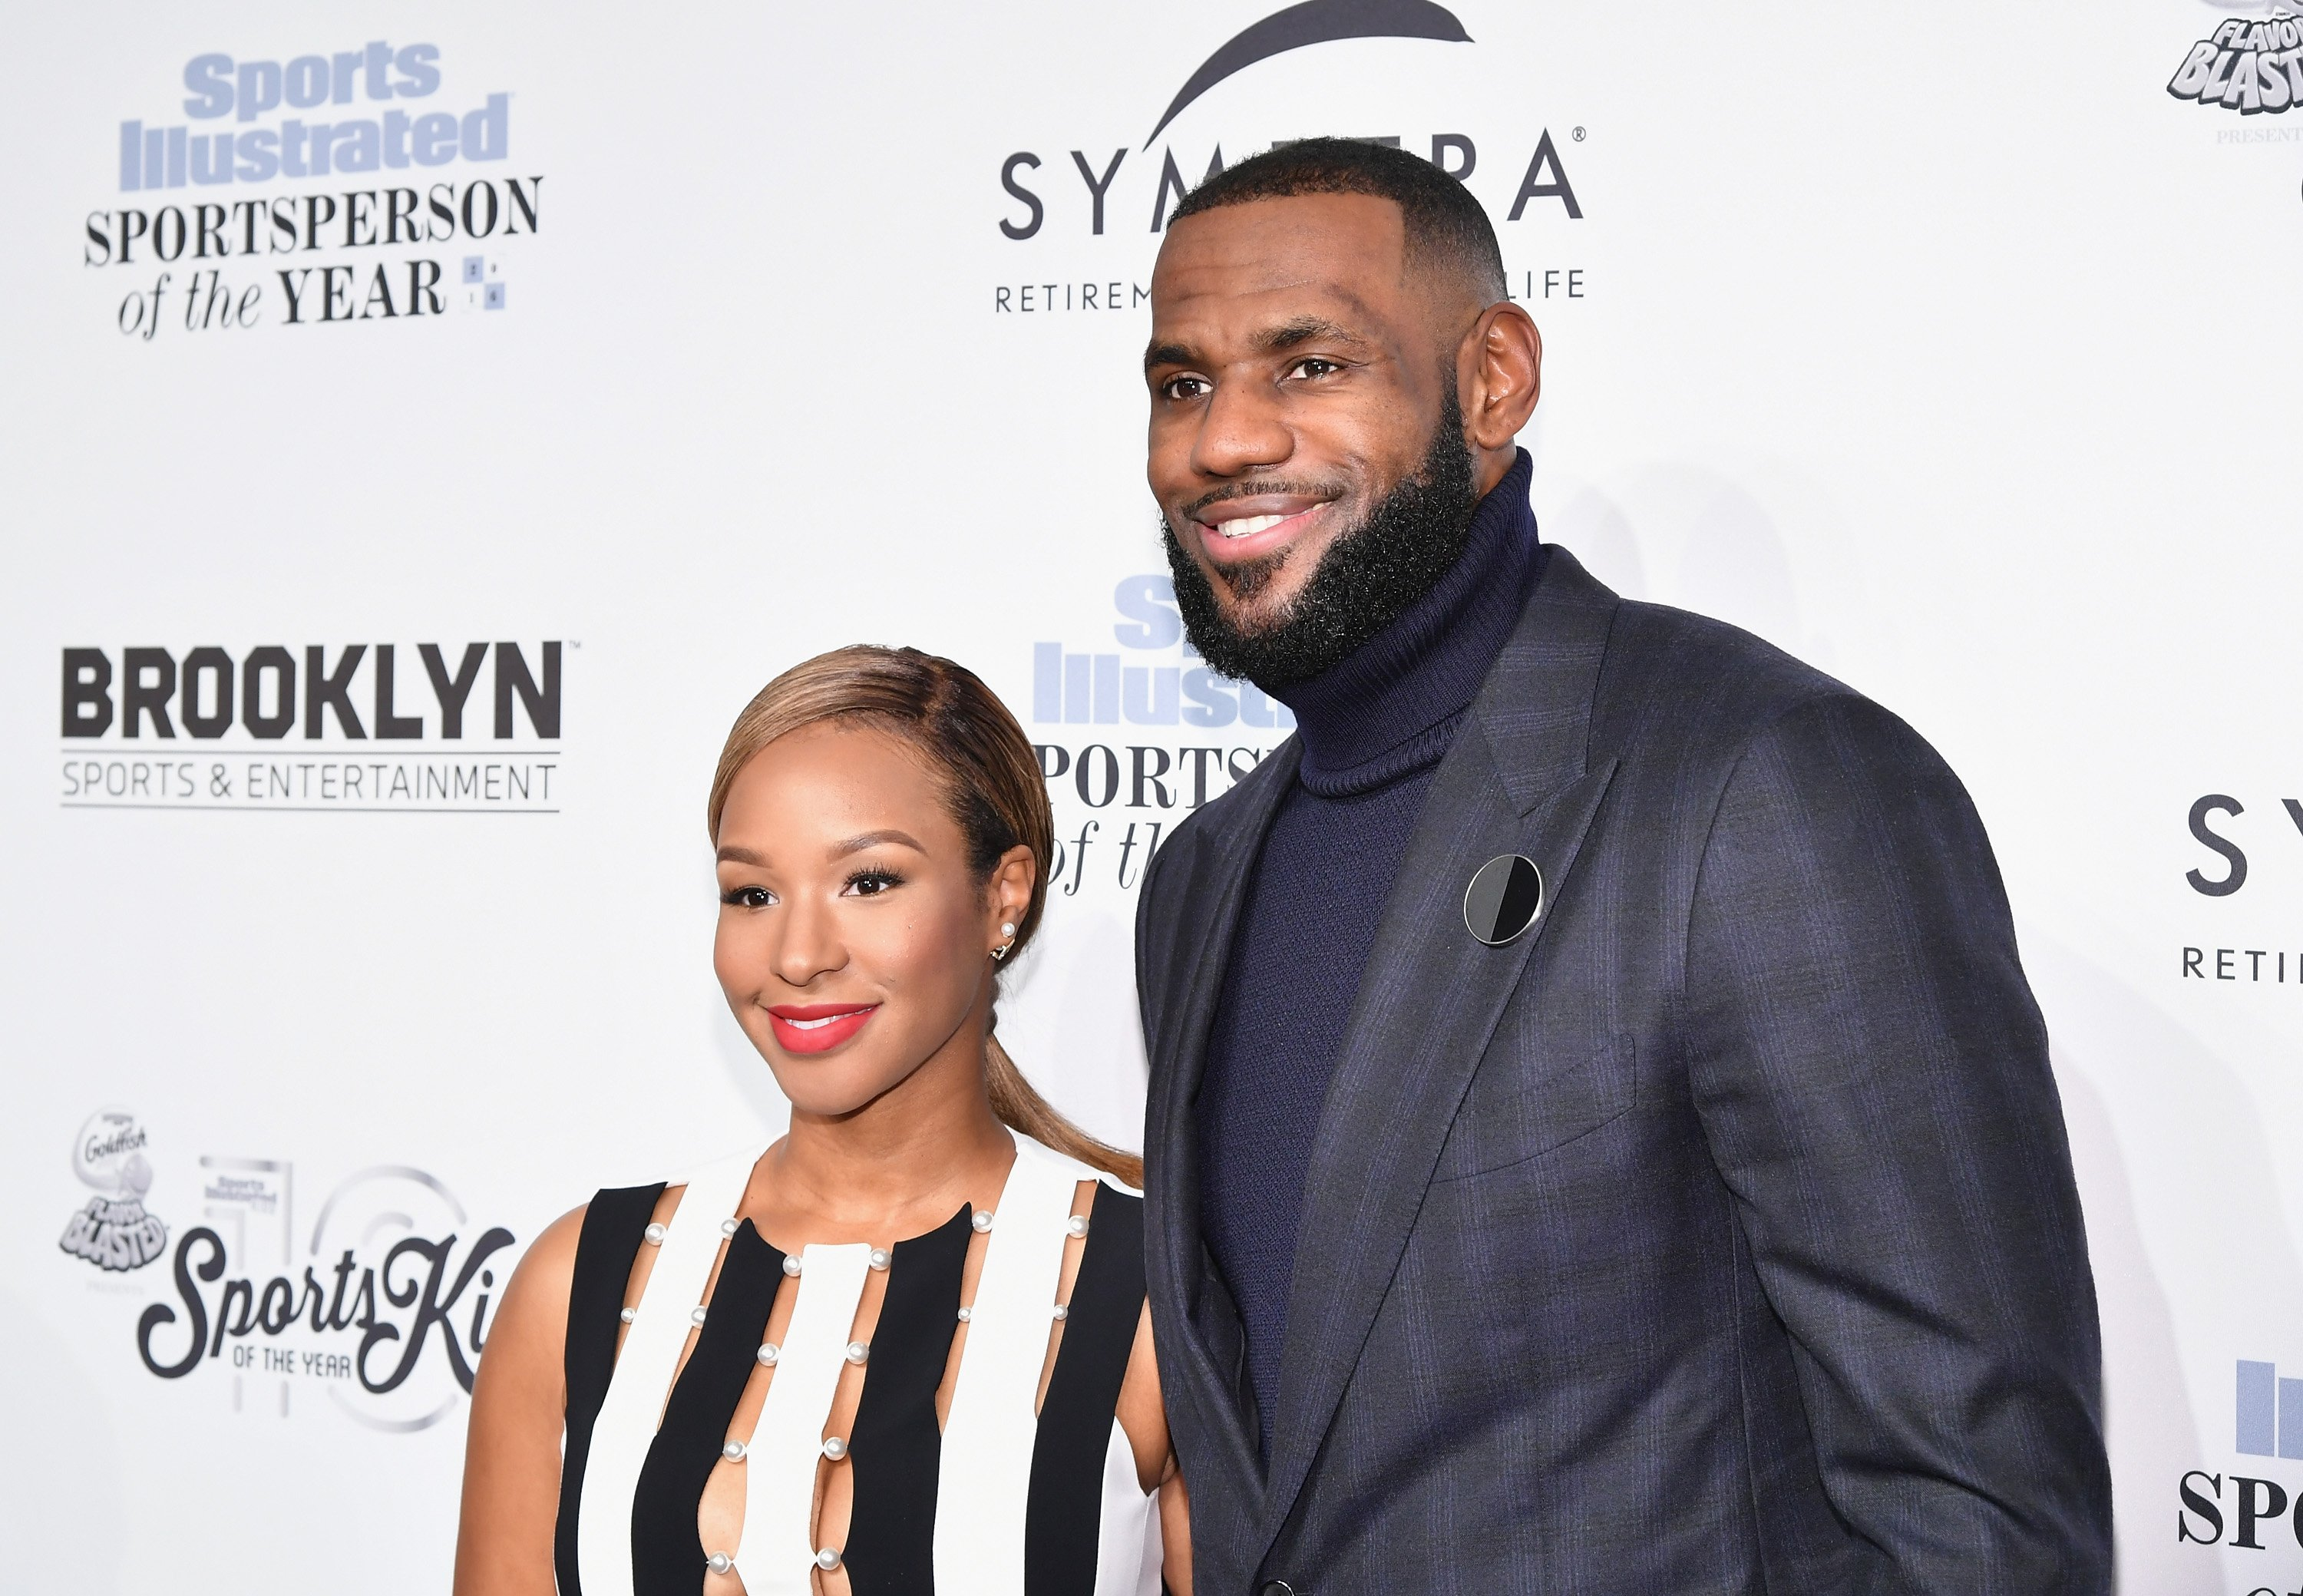 Savannah Brinson and Basketball Player Lebron James attend the Sports Illustrated Sportsperson of the Year Ceremony| Photo: Getty Images